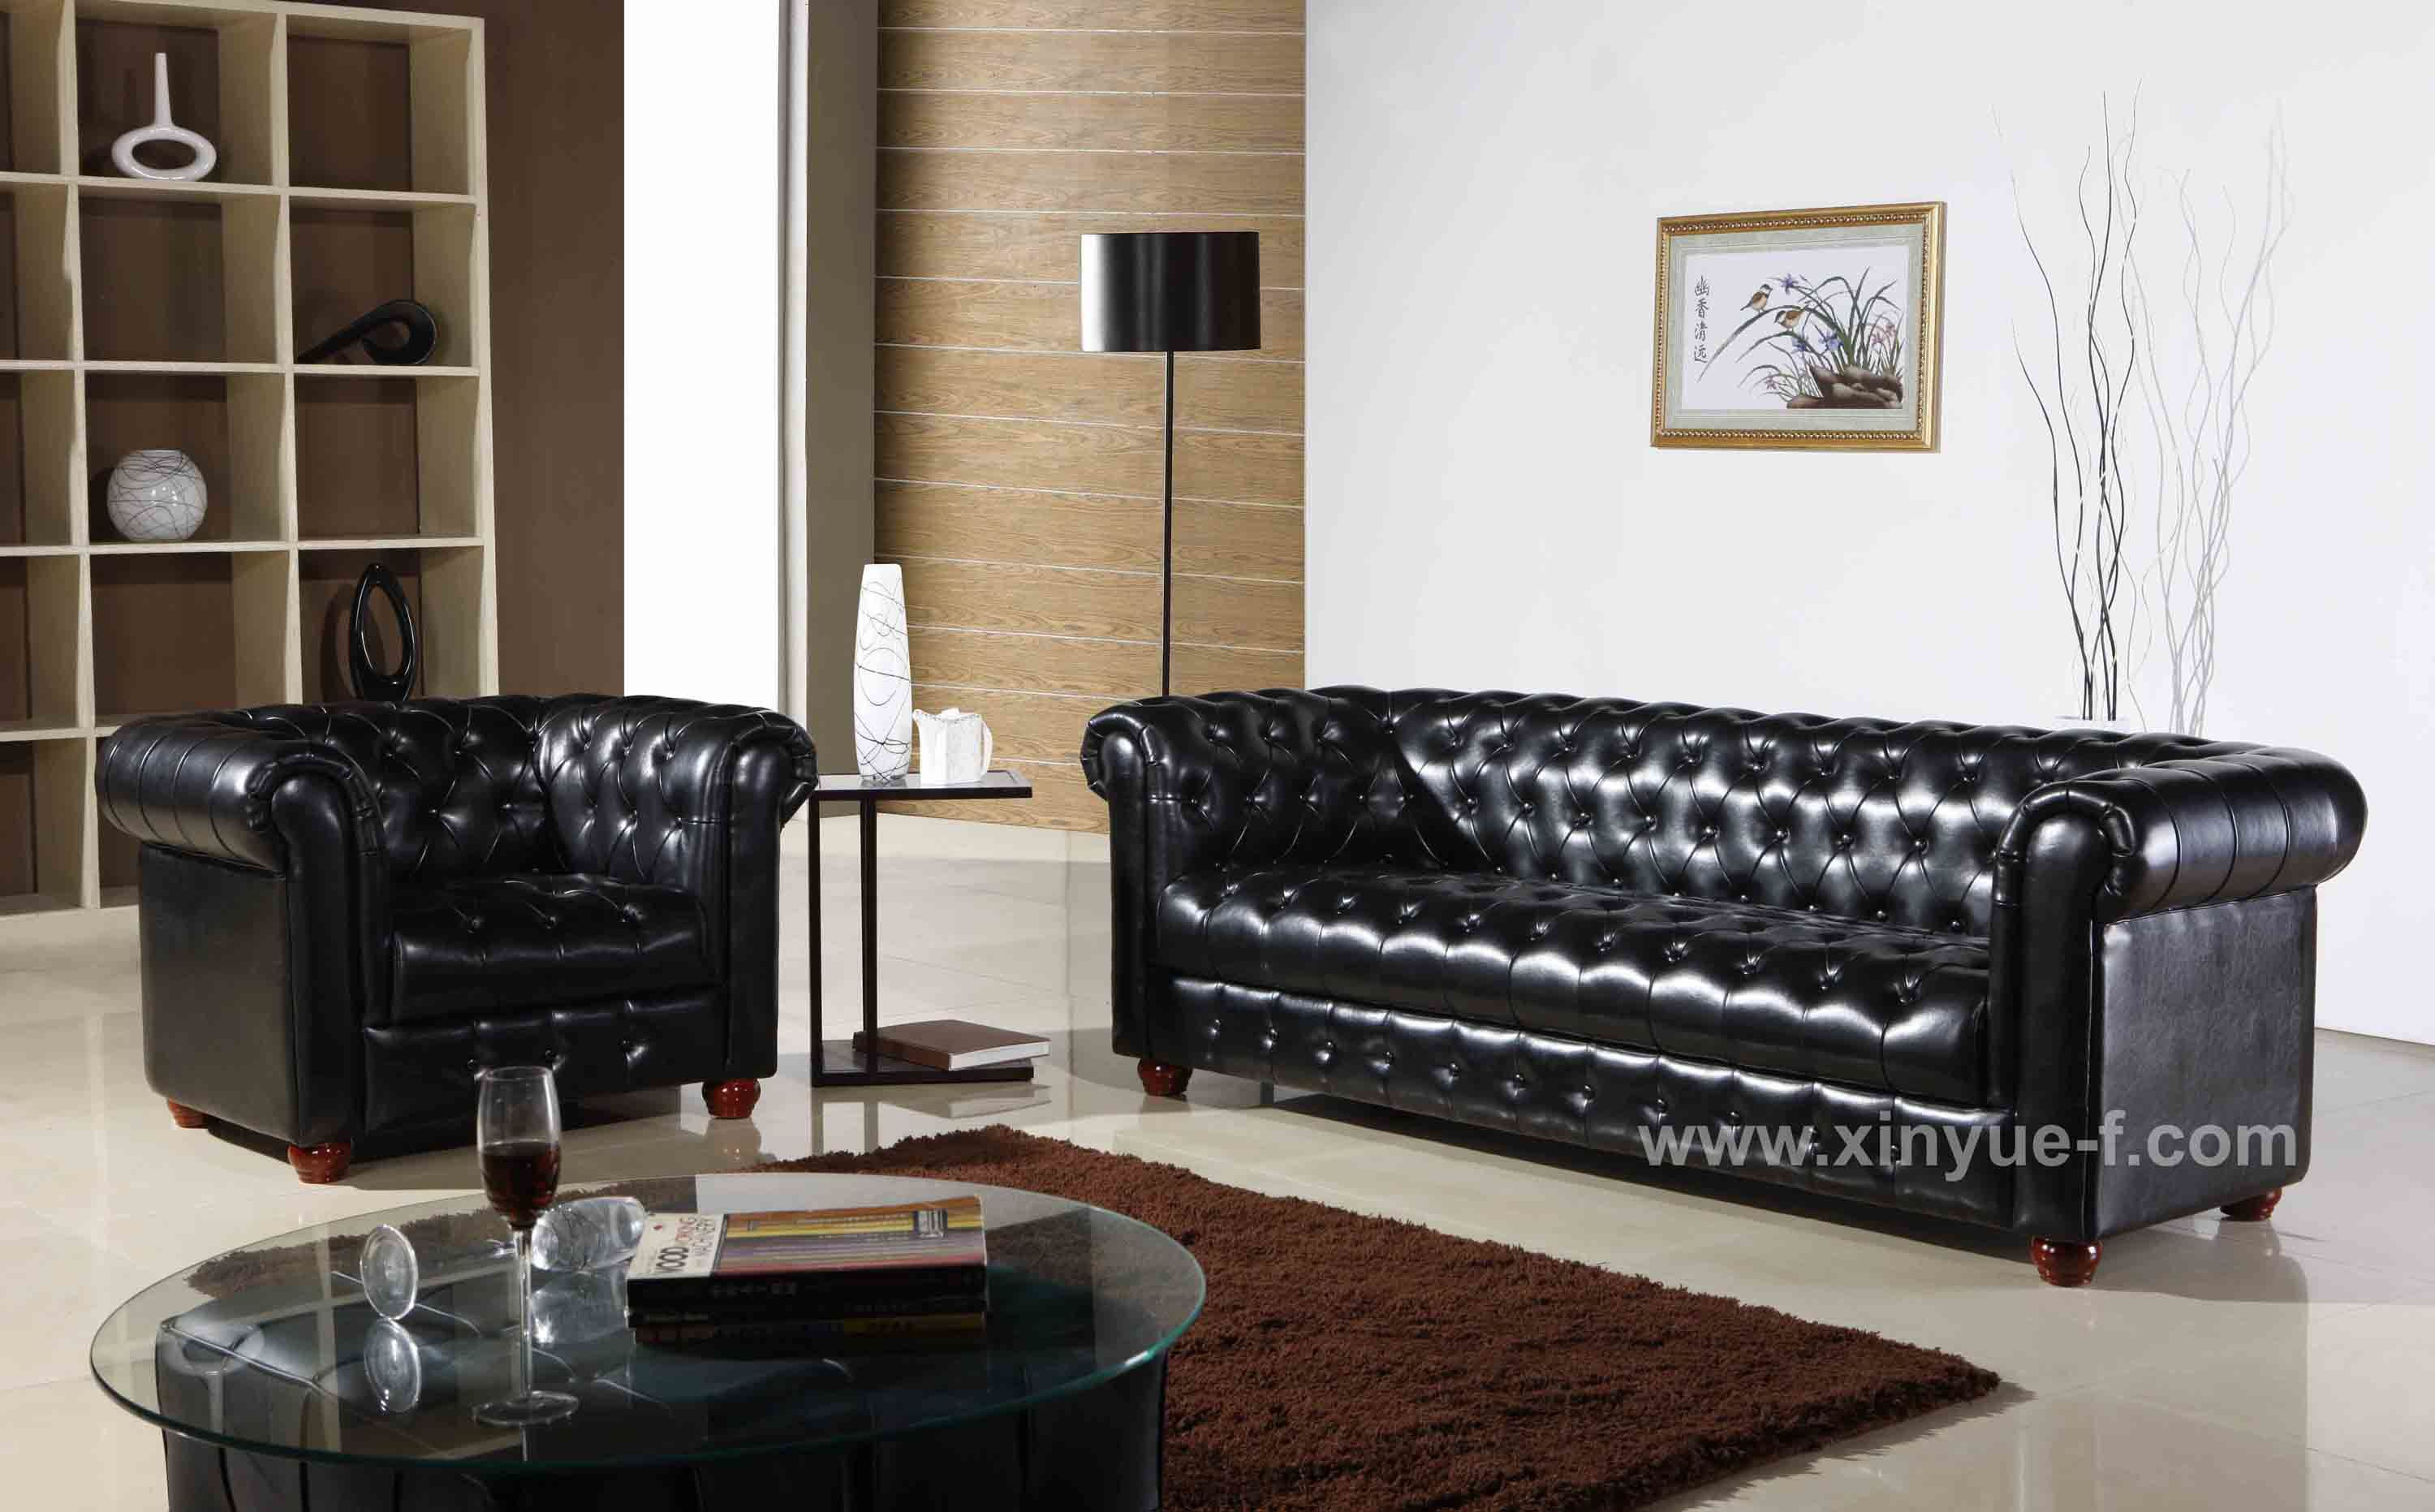 ... Hotel Office Leather Sofa - China Leather Sofa, Chesterfield Sofa